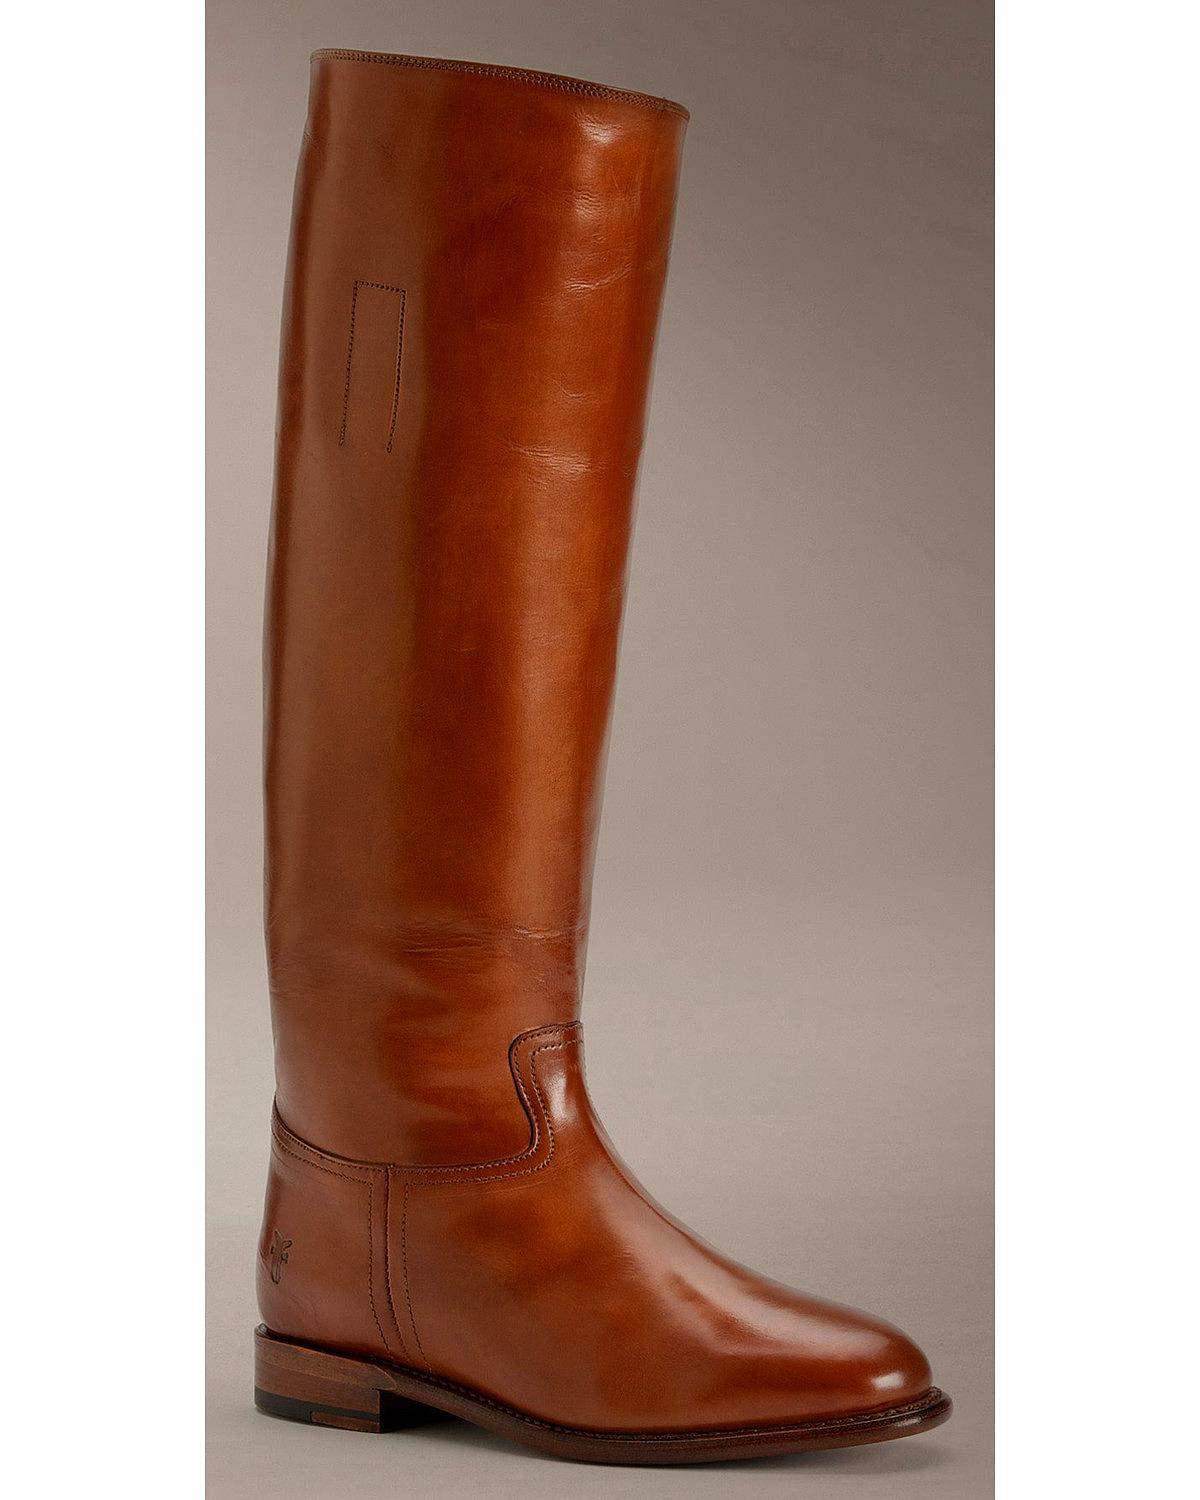 65670202922 Image is loading Frye-Abigal-Riding-Boot-76172-WHS